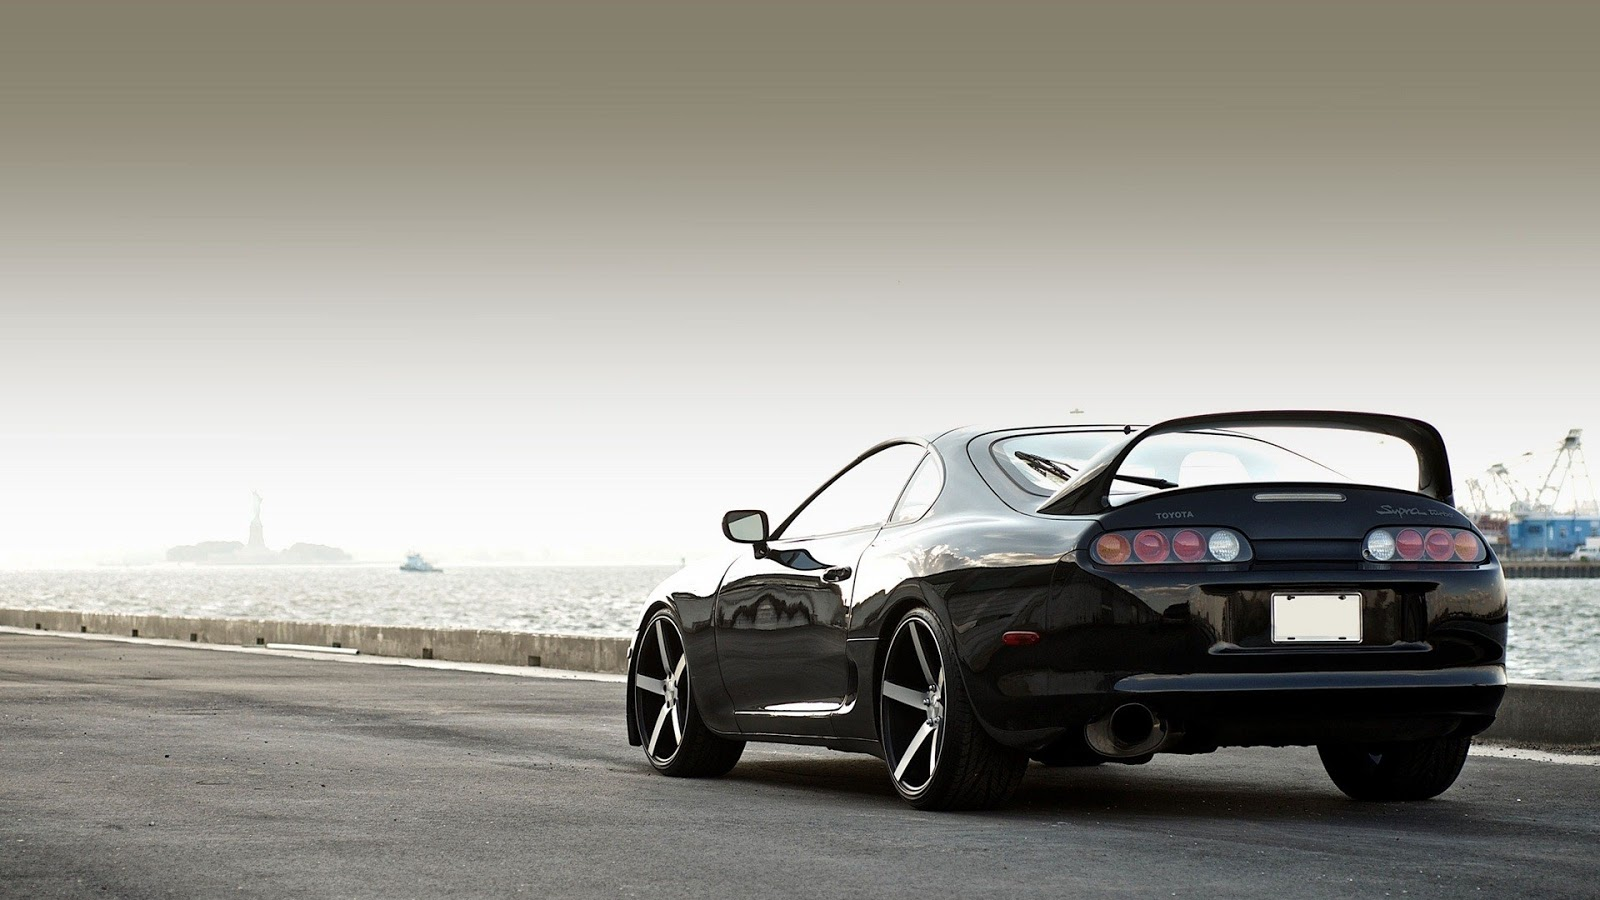 Black Toyota Supra Wallpaper for Desktop Size 1600x900 12848 1600x900